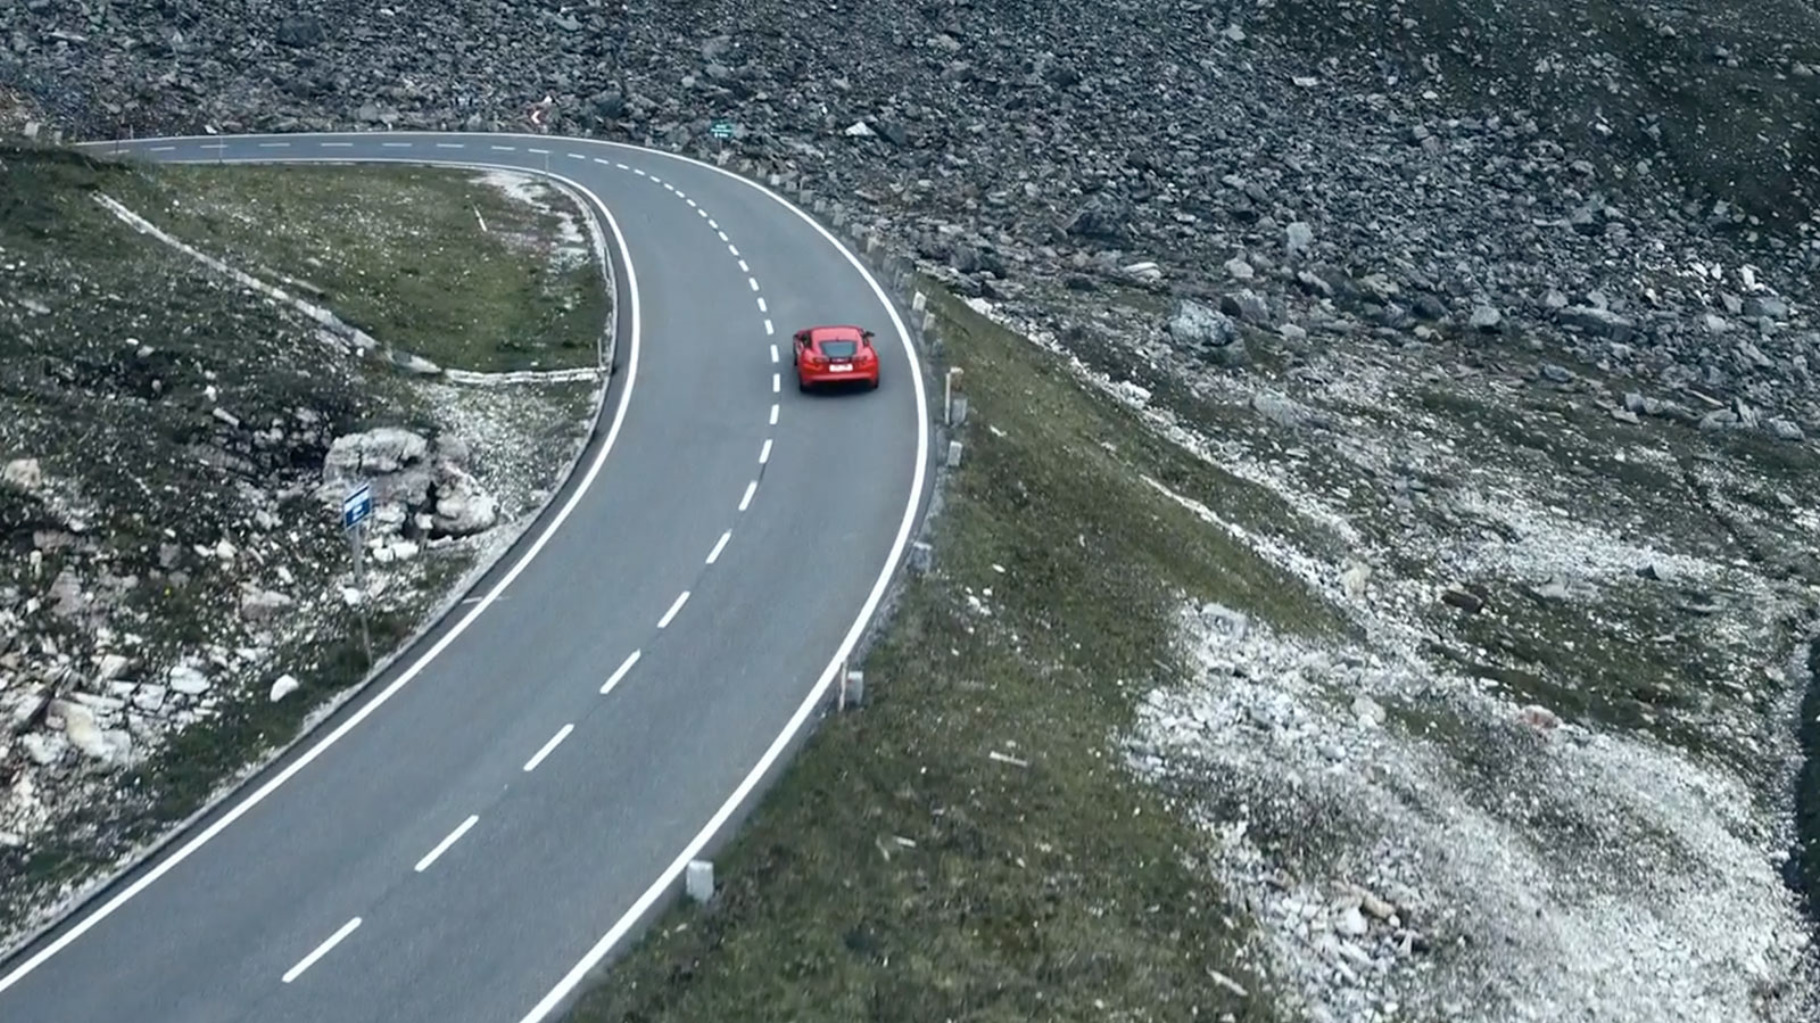 A jaguar f-type driving on a road through mountainous terrain.